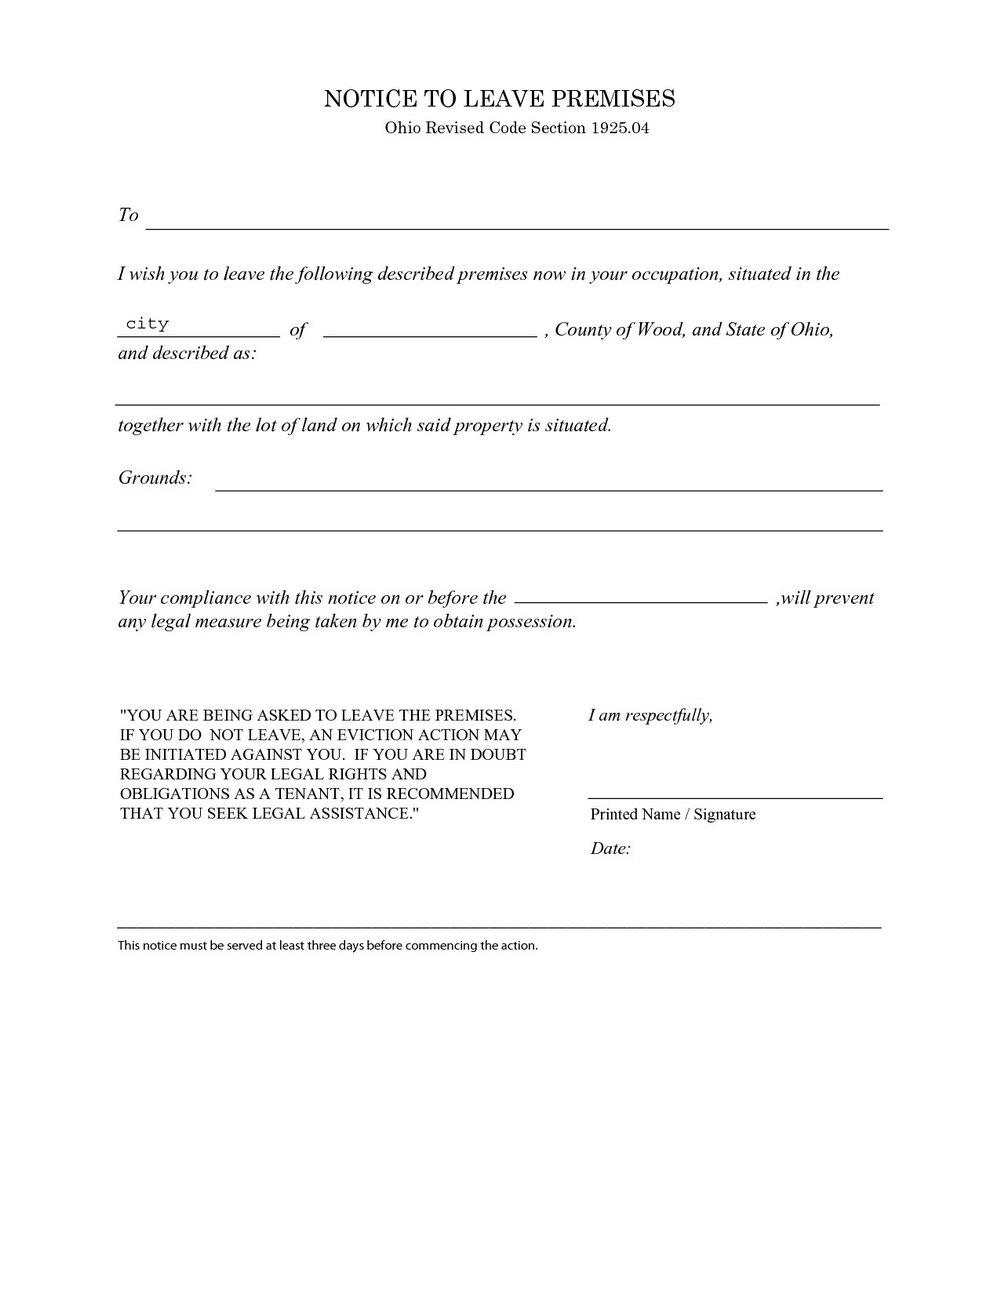 3 Day Eviction Notice Form Mississippi